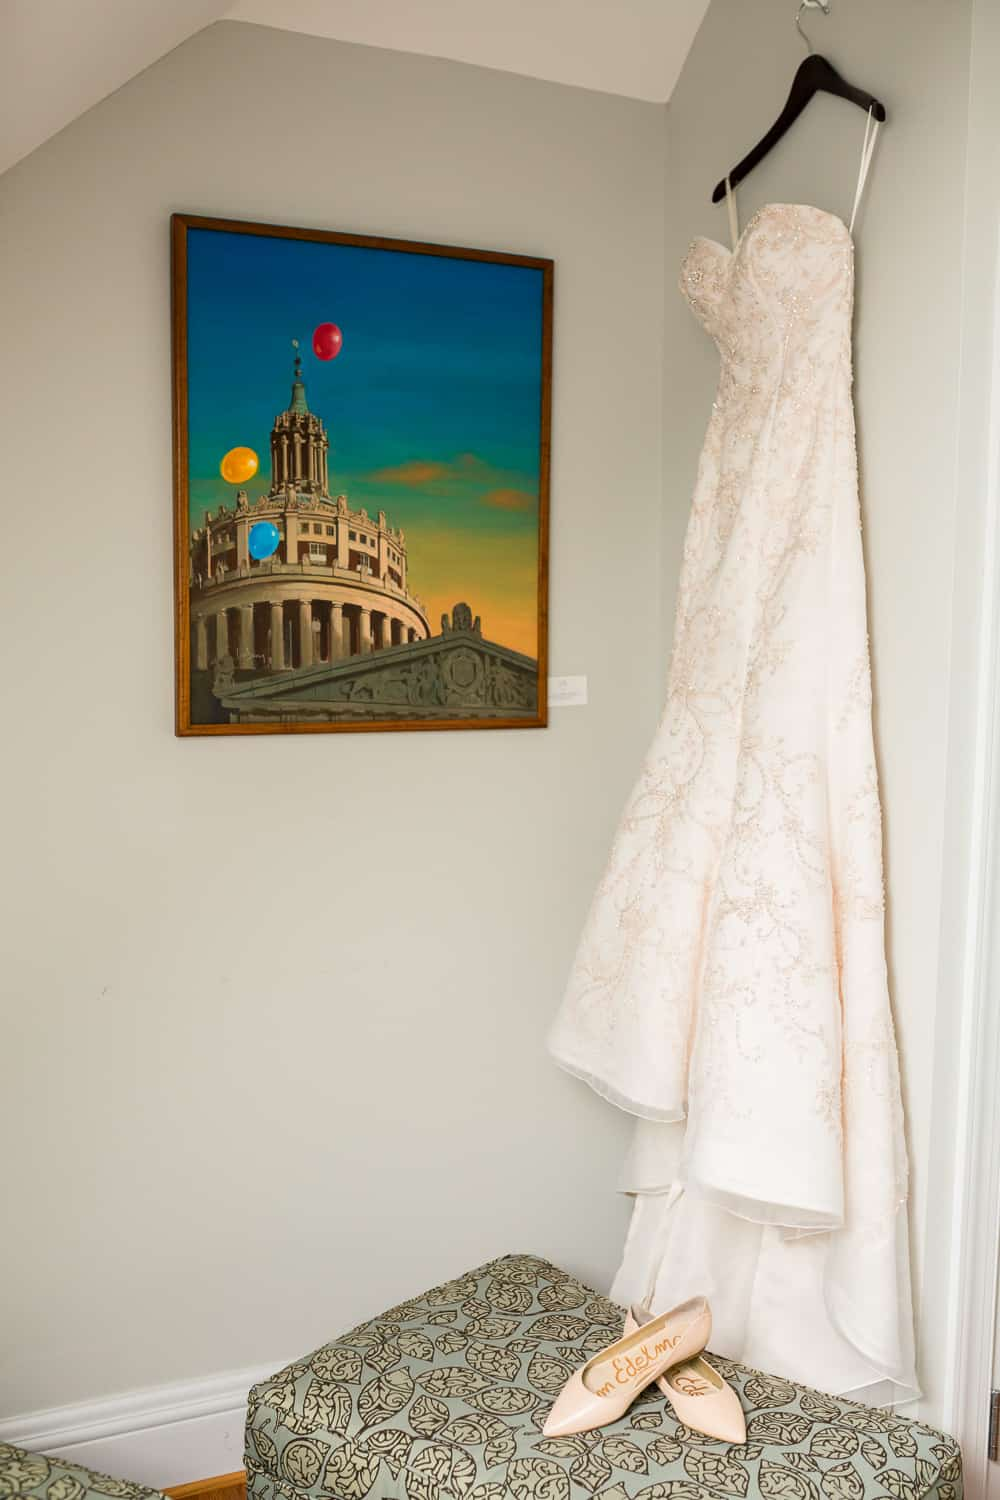 Casablanca dress from Blissette's hanging next to a painting of Rush rhees library.